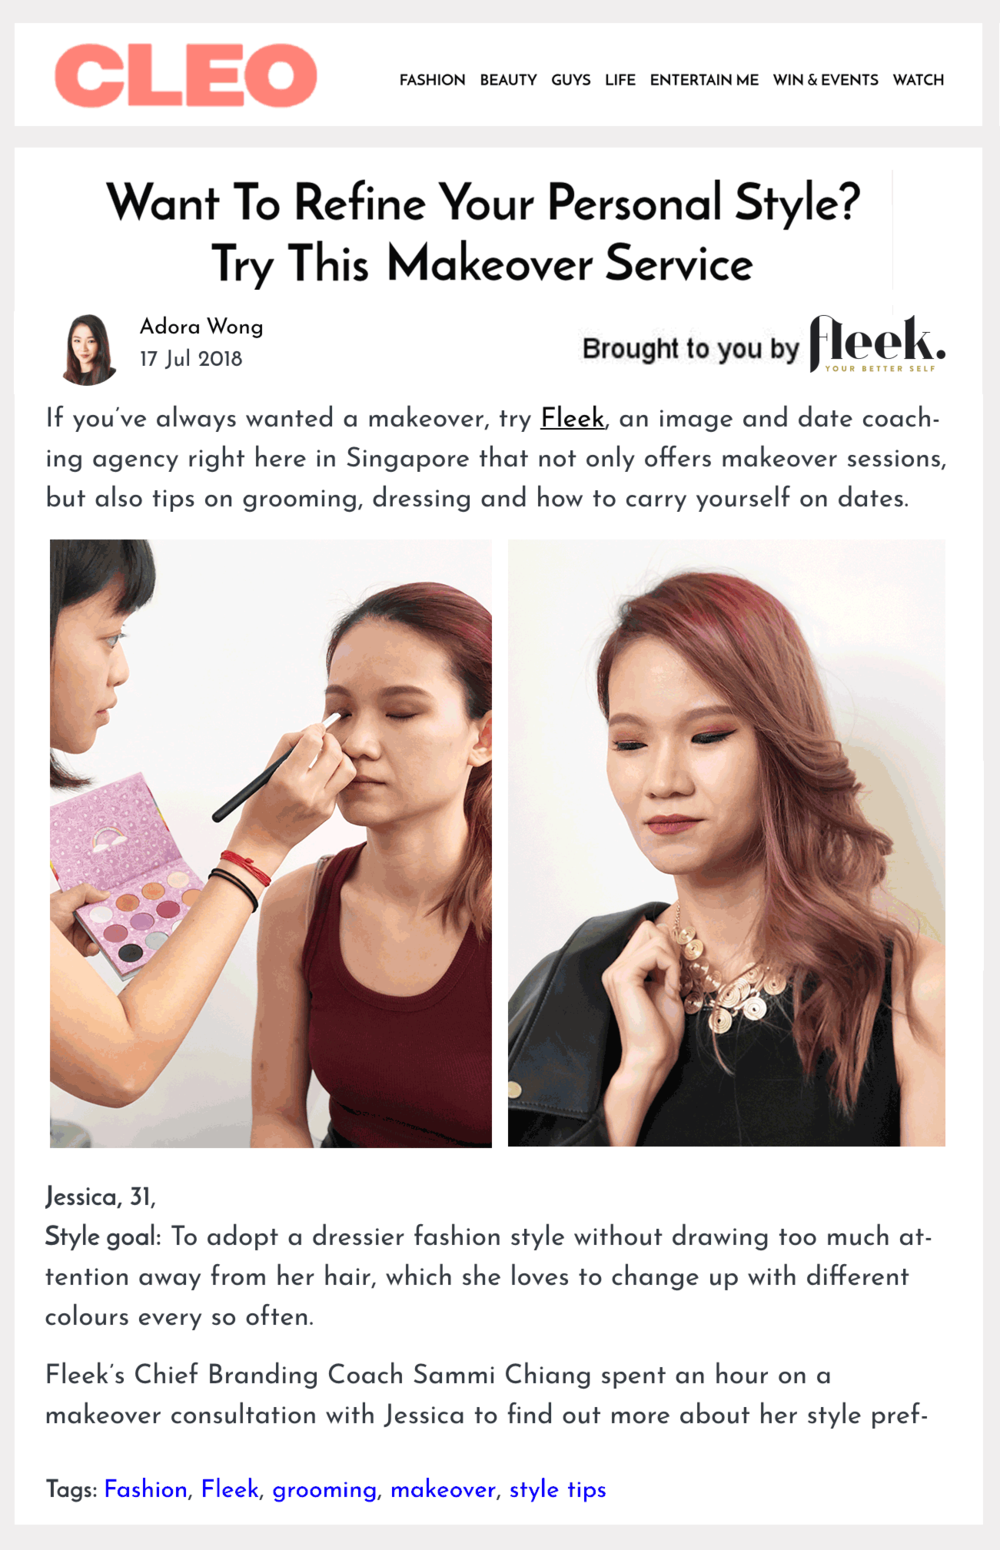 http://www.cleo.com.sg/fashion/makeover-singapore-fleek/